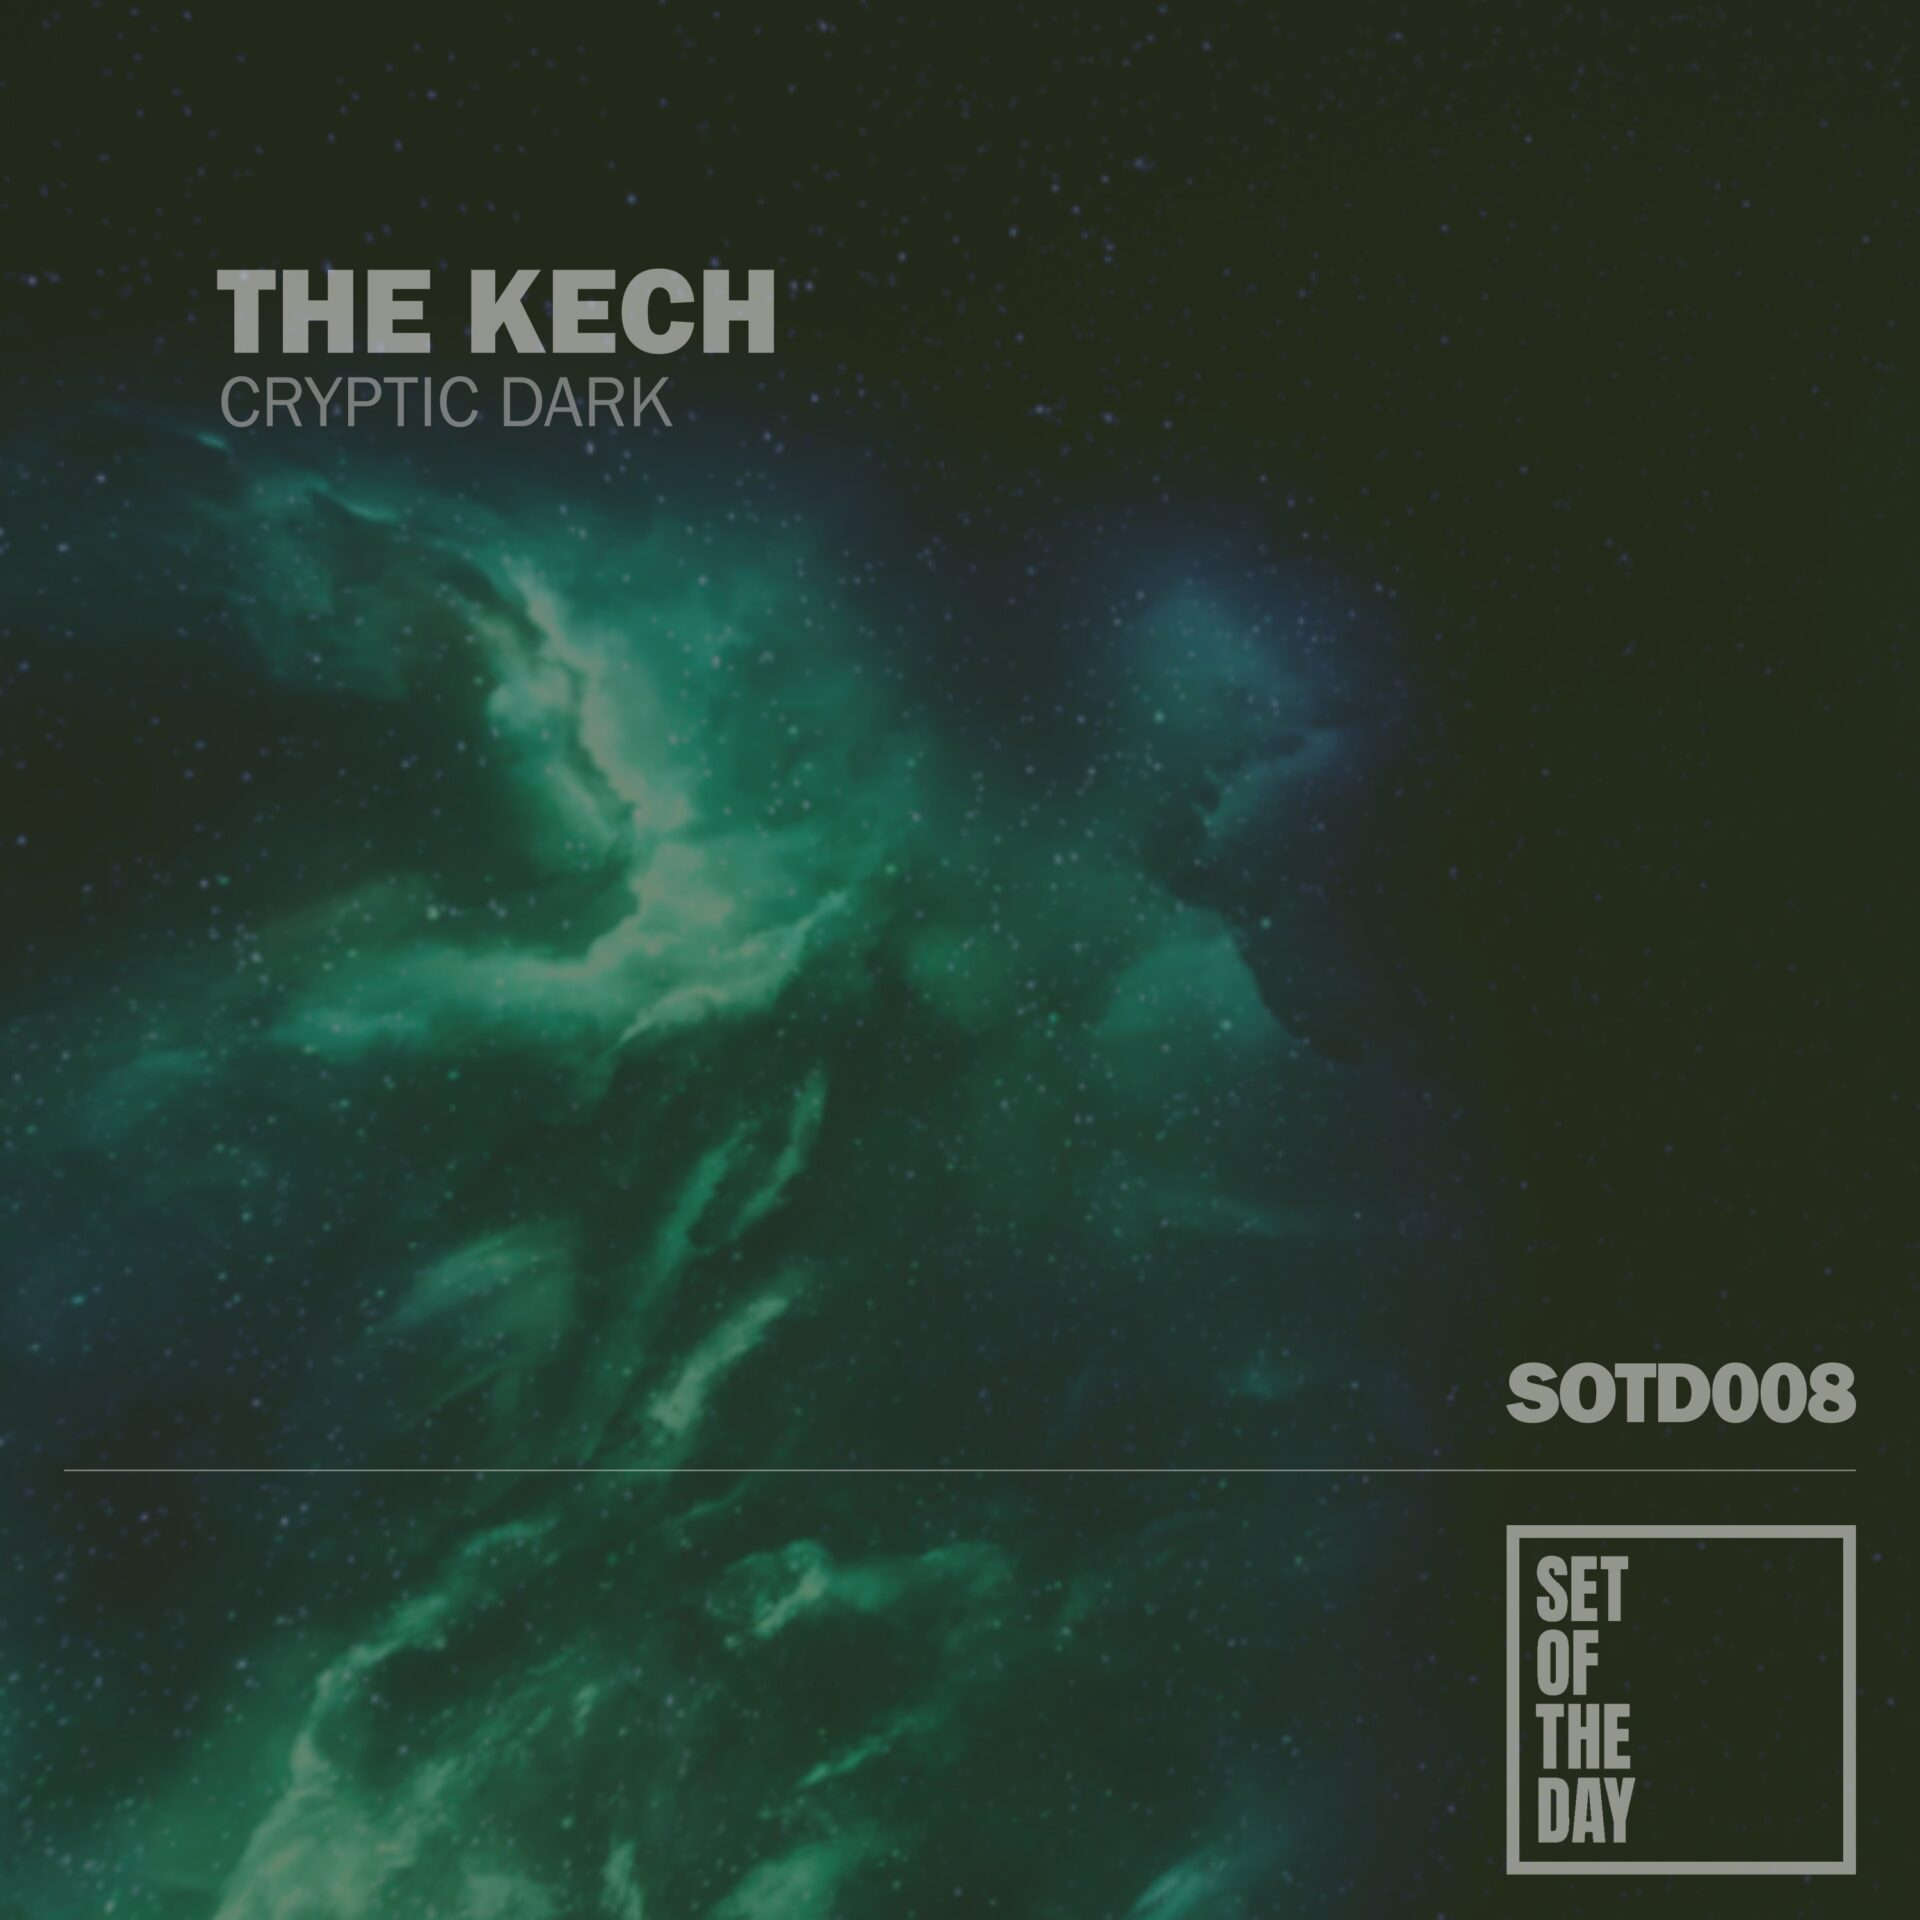 sotd008-the-kech-cryptic-dark-1920x1920 - Releases